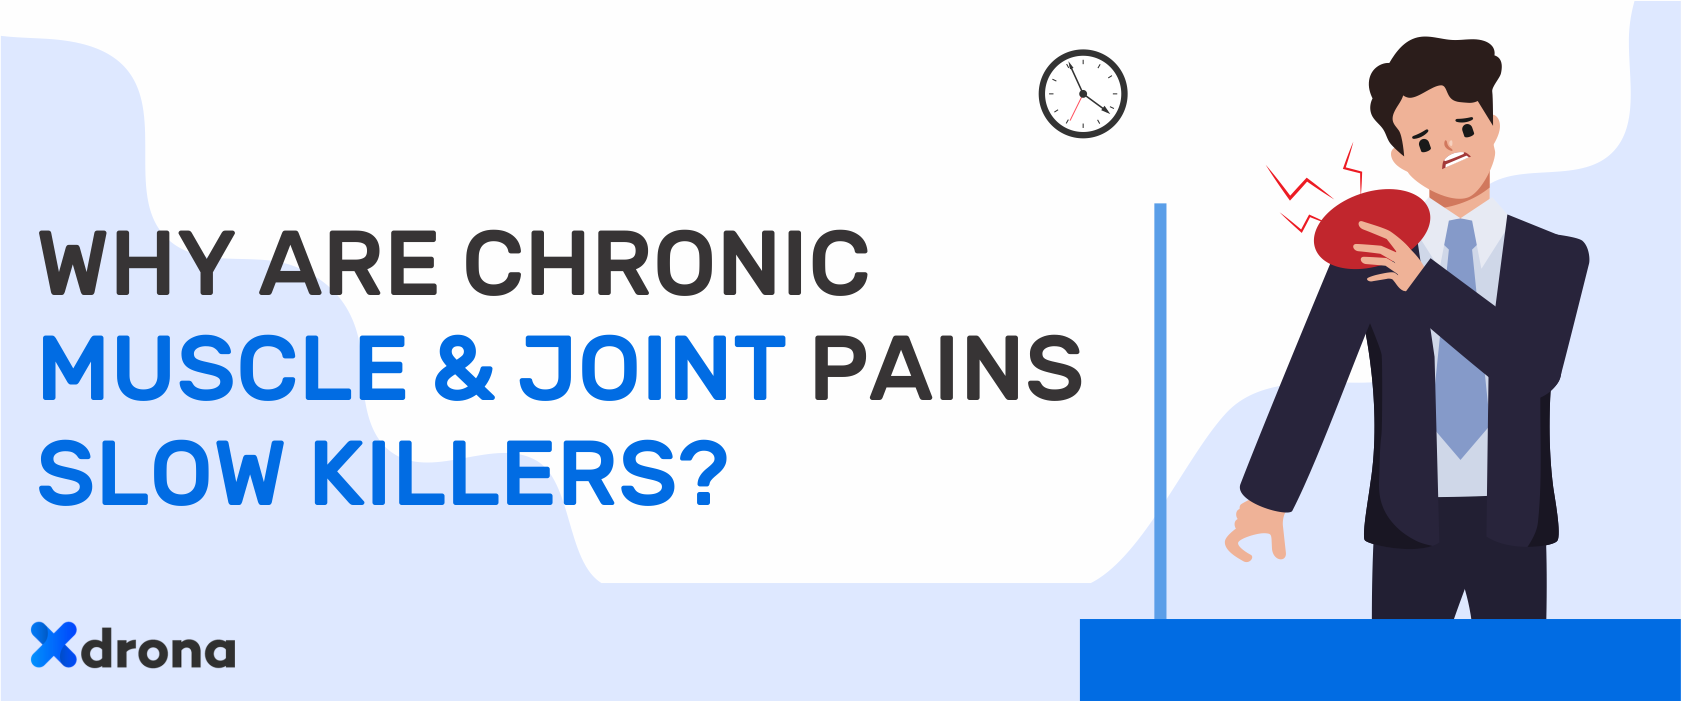 Why Are chronic Muscle & Joint Pains Slow Killers?